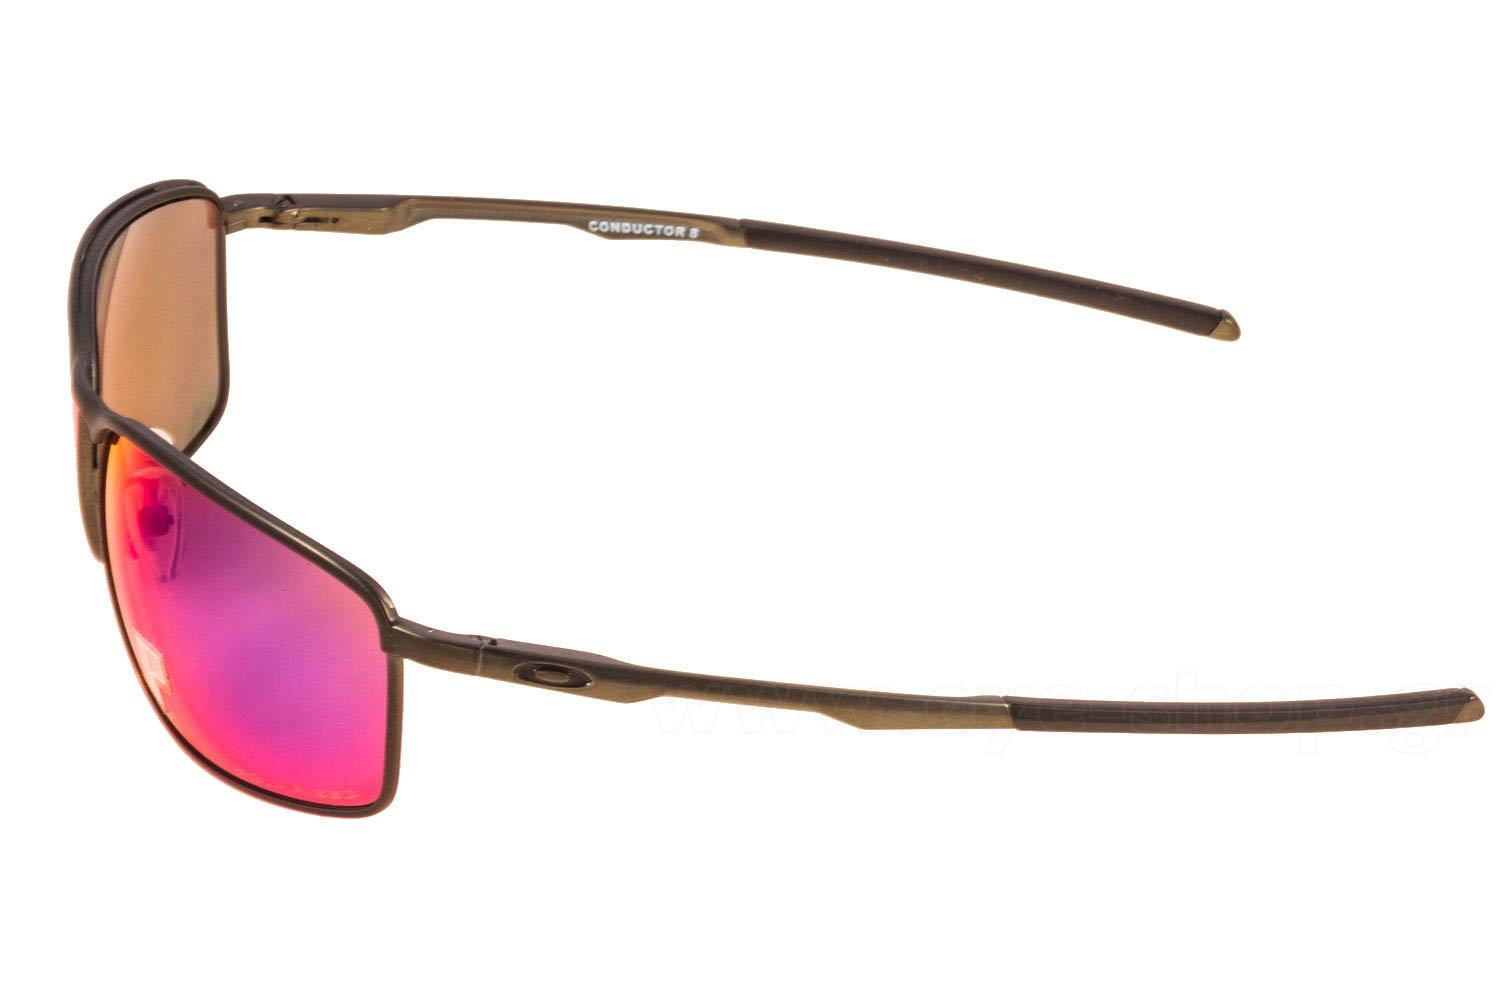 f93846162c6 Oakley Conductor 8 Polarized Review. Ray Ban 4107 ...